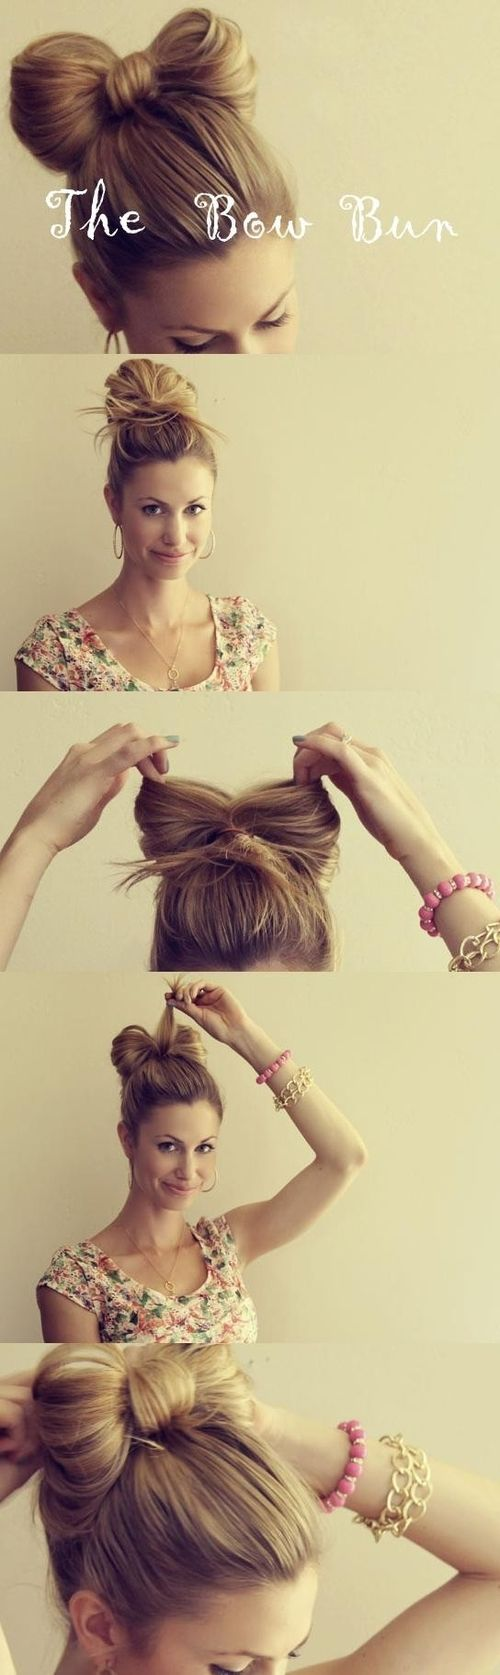 Tutorial on how to do a hair bow bun- Love this! I've always wanted to do this hairstyle. This tut makes it so much simplier!